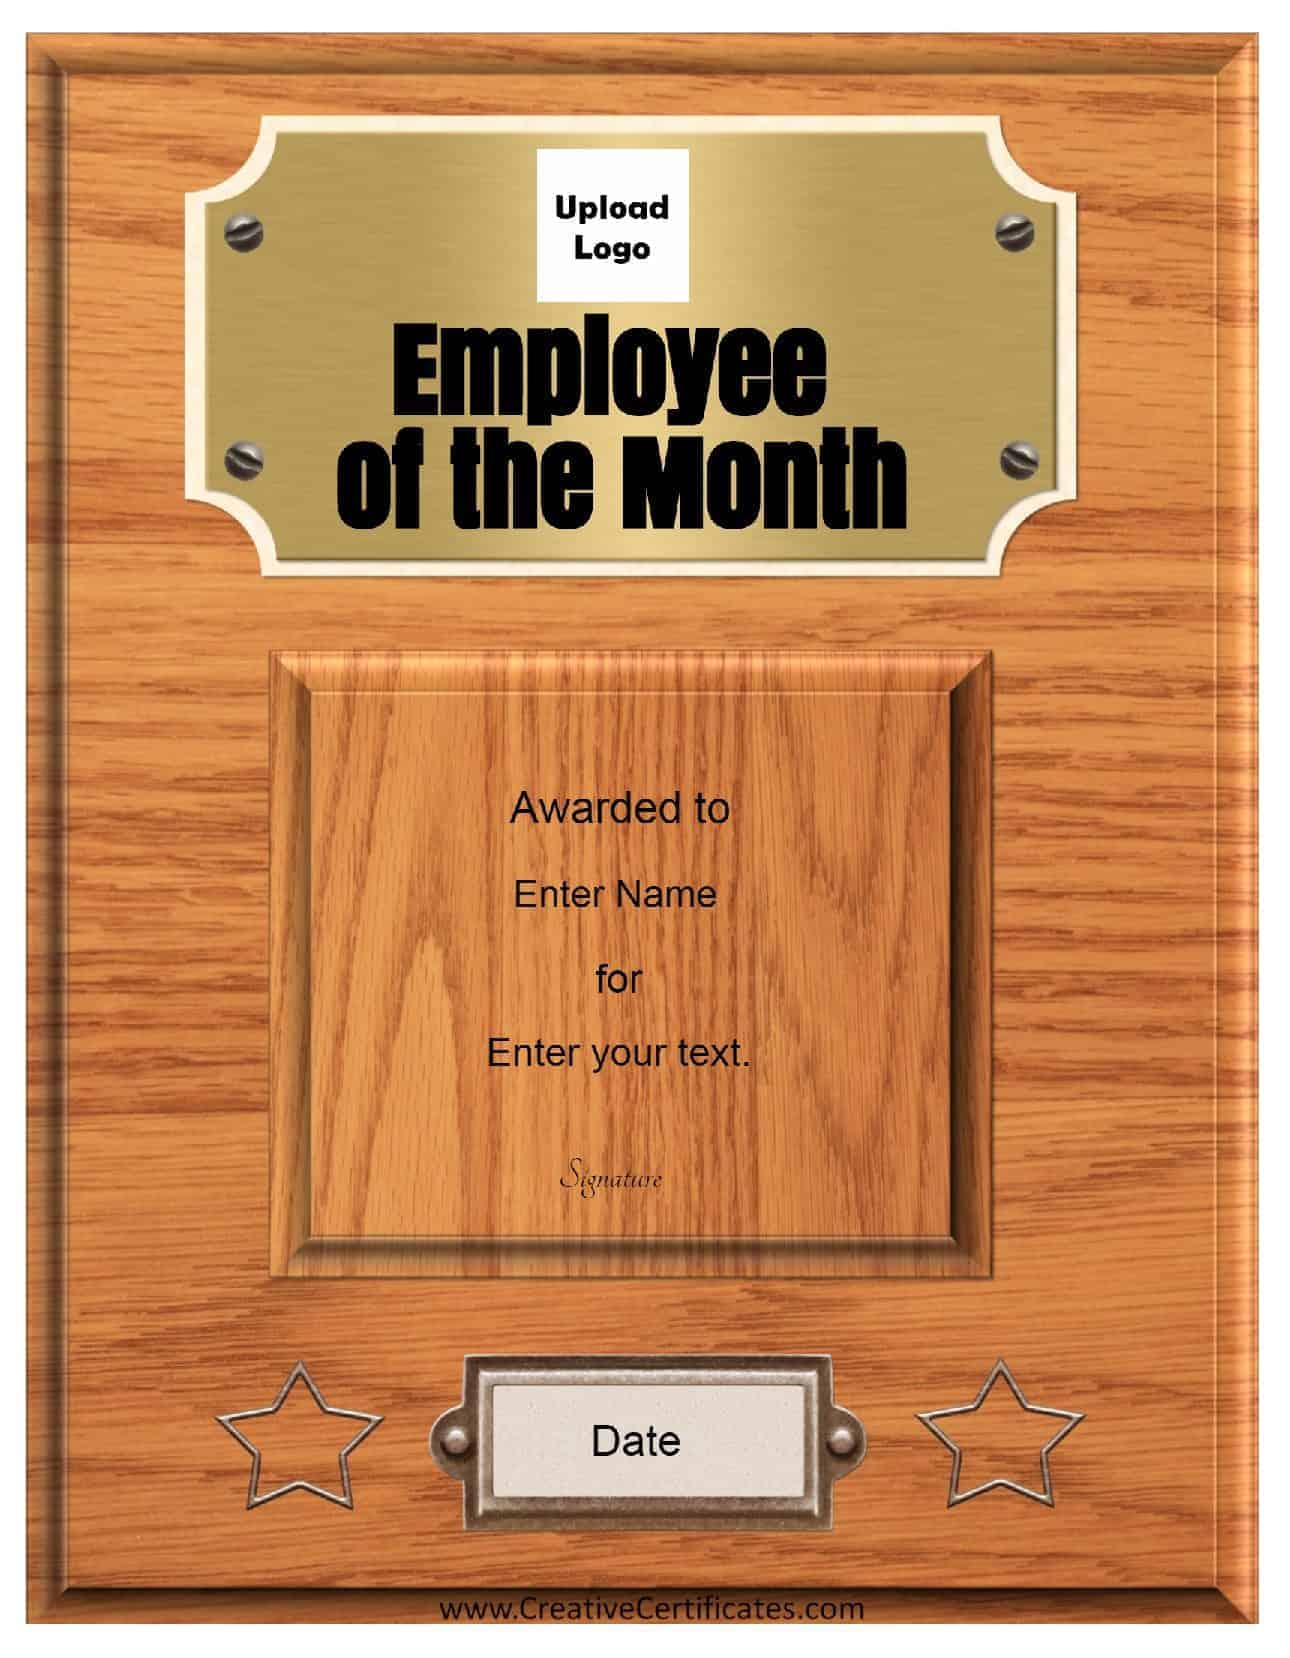 Employee of the month certificate template bing images for Employee of the quarter certificate template